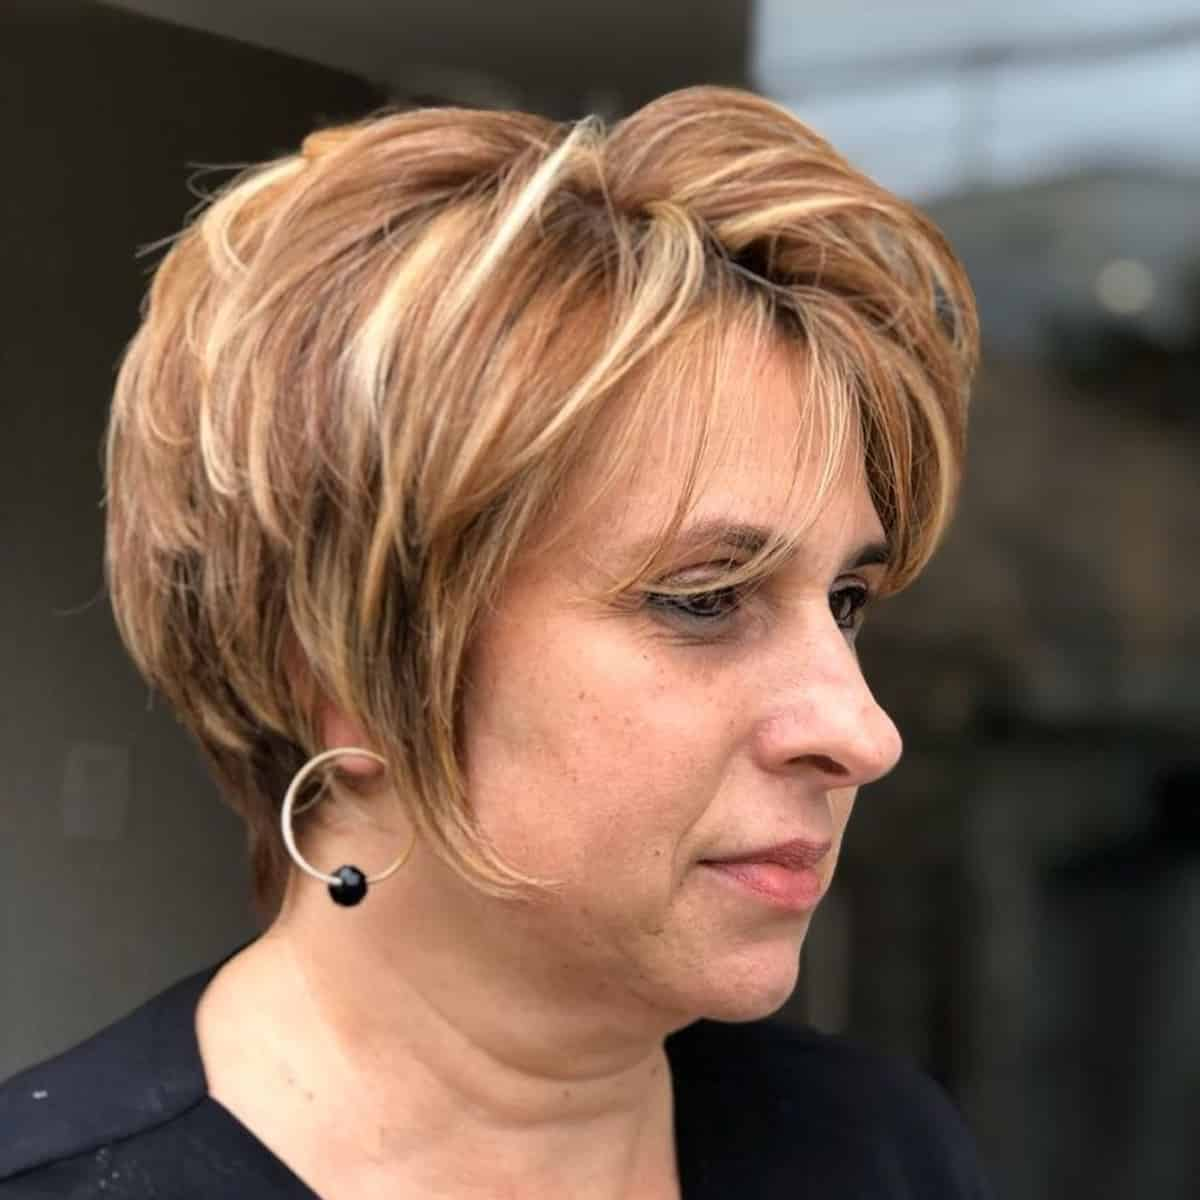 21 Modern Layered Bob Haircuts for Women Over 50 to Take Years Off